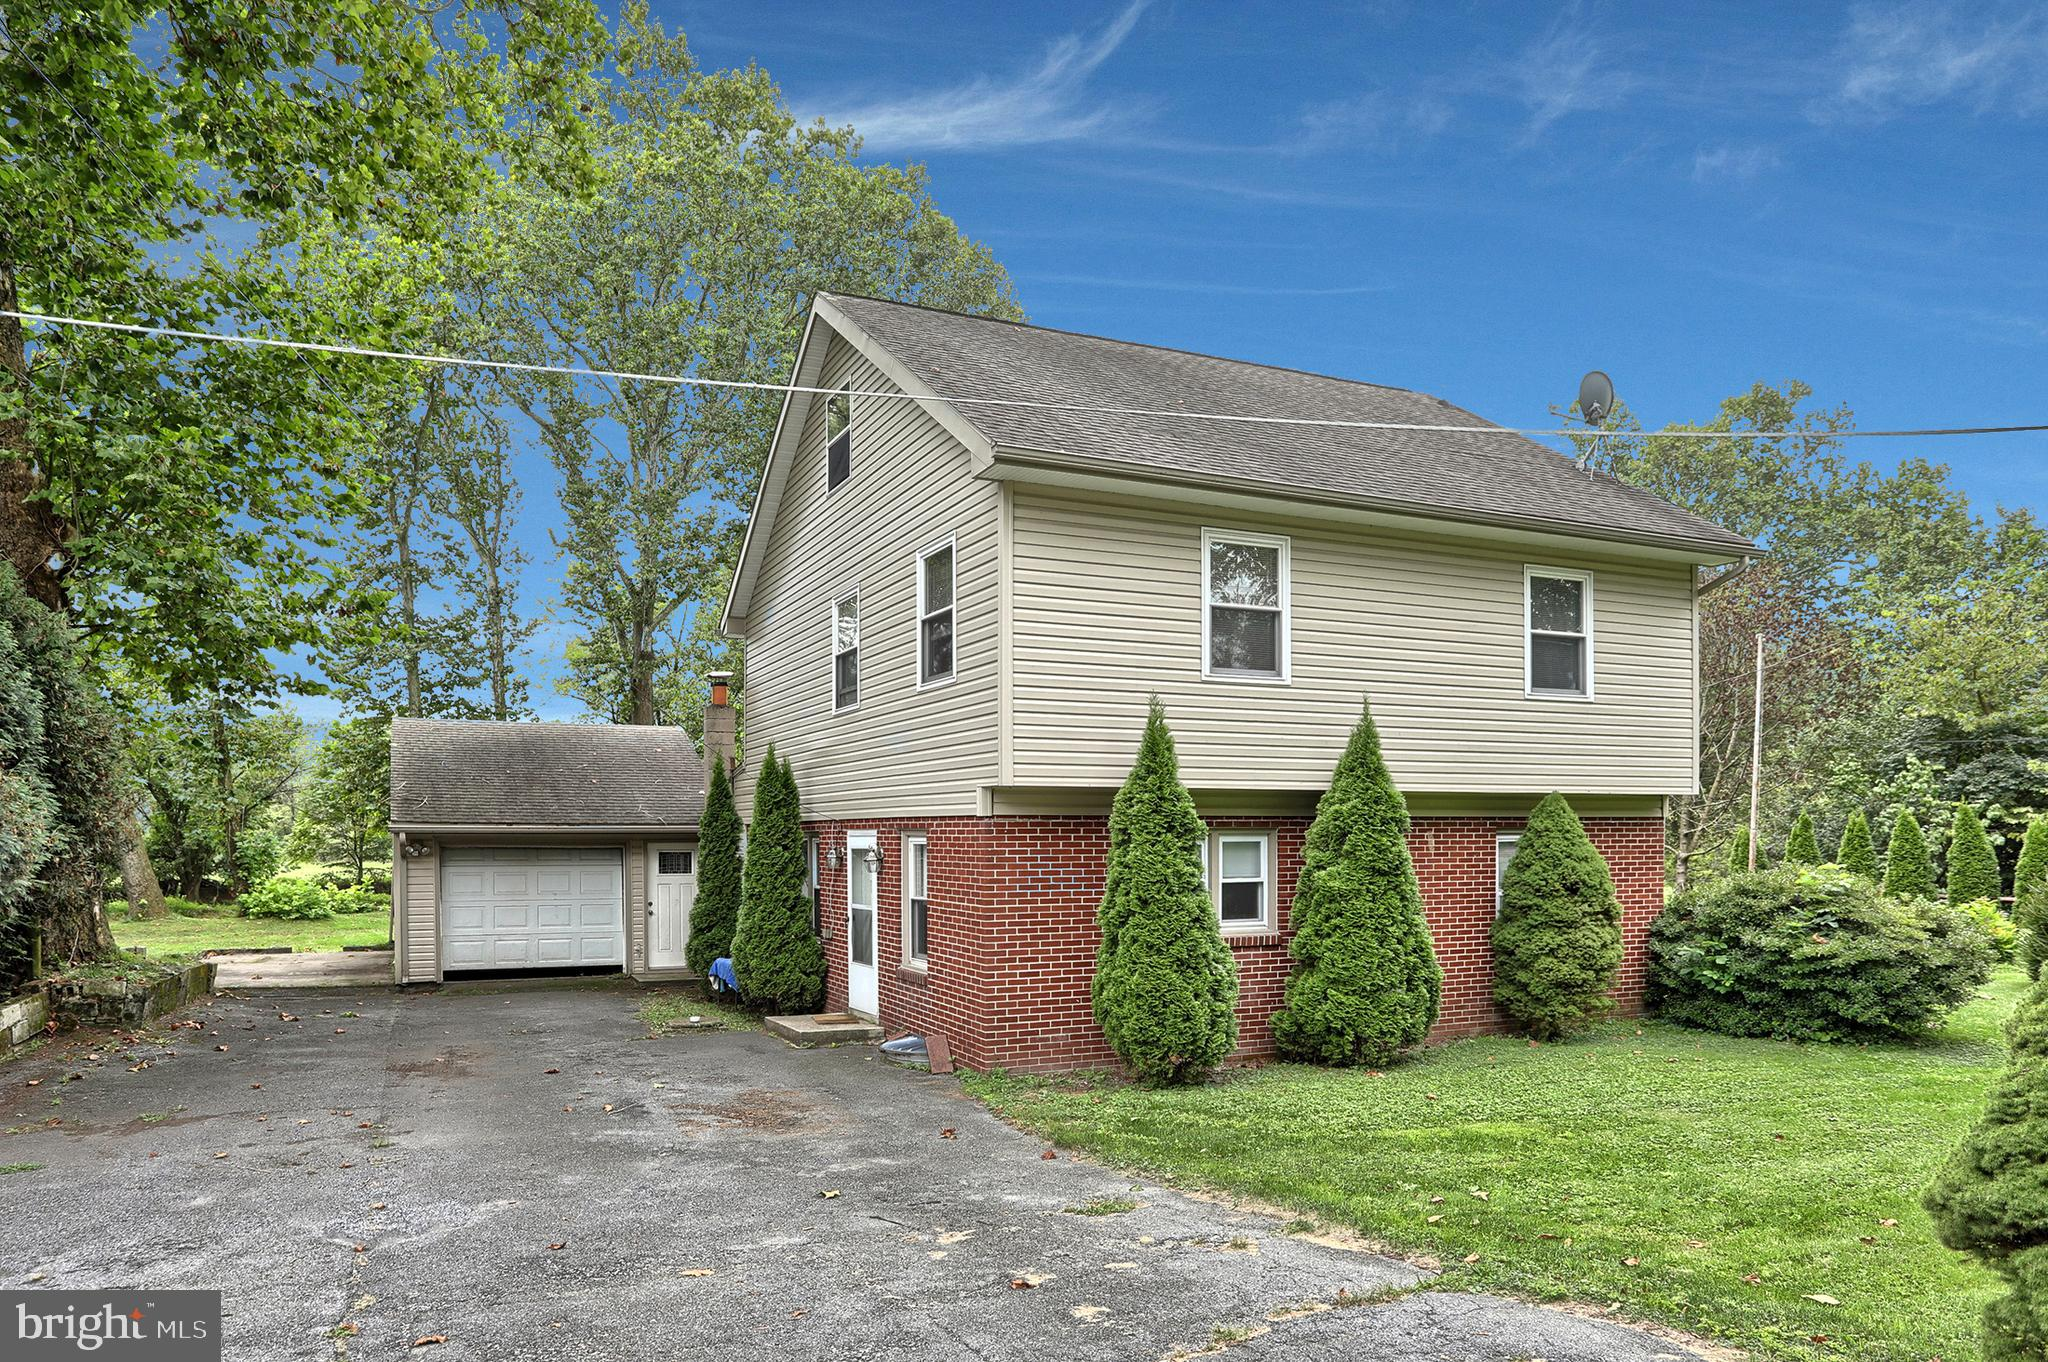 614 CANAL ROAD, WOMELSDORF, PA 19567